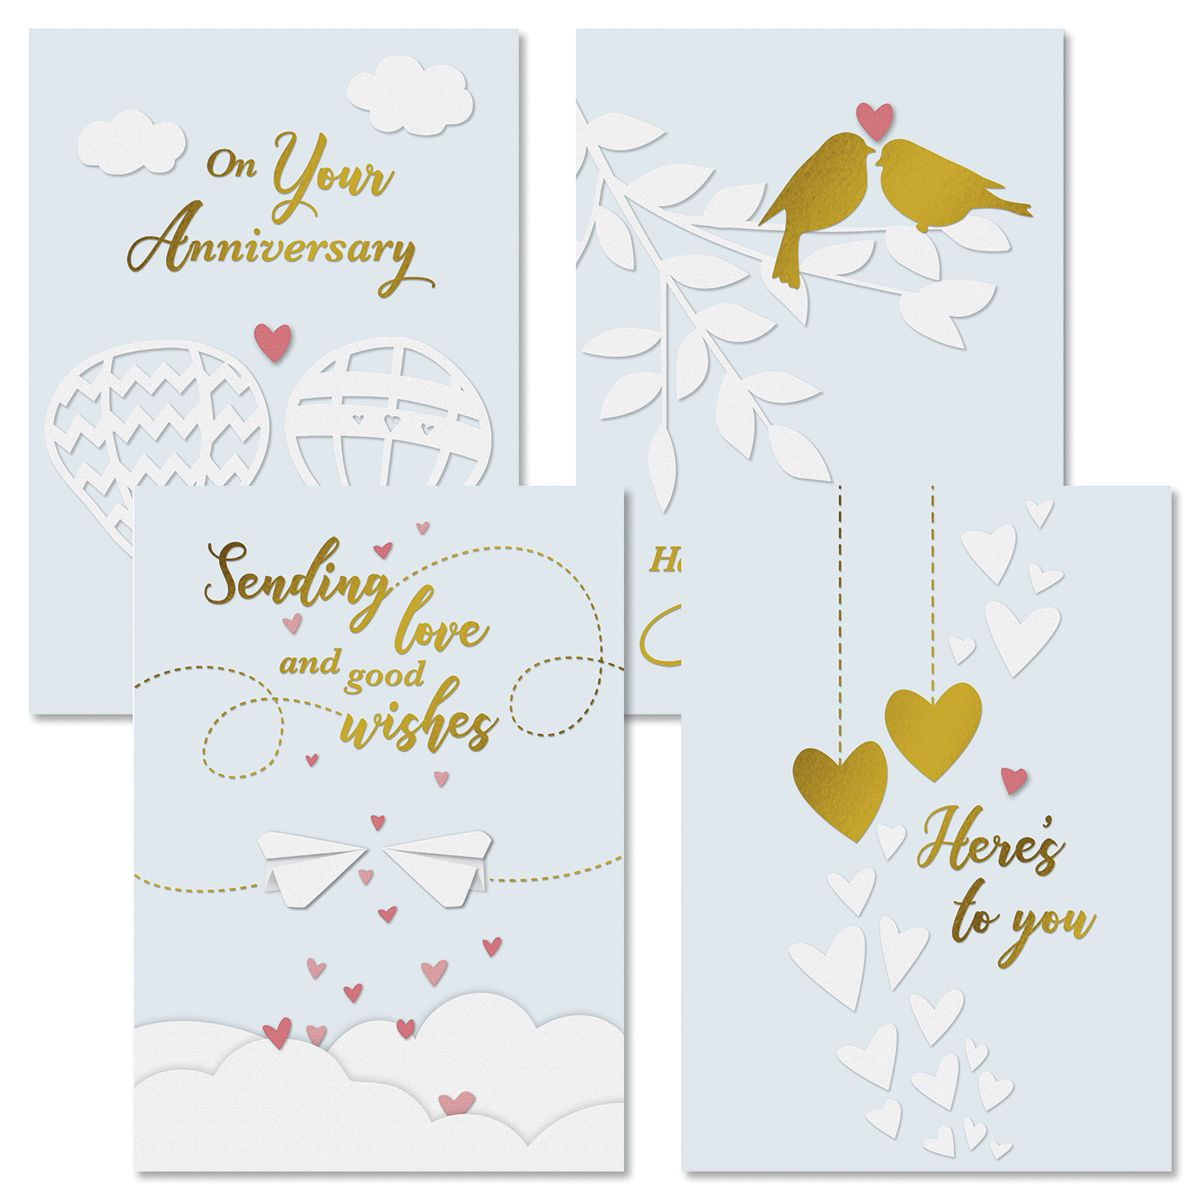 Whimsy Anniversary Cards and Seals